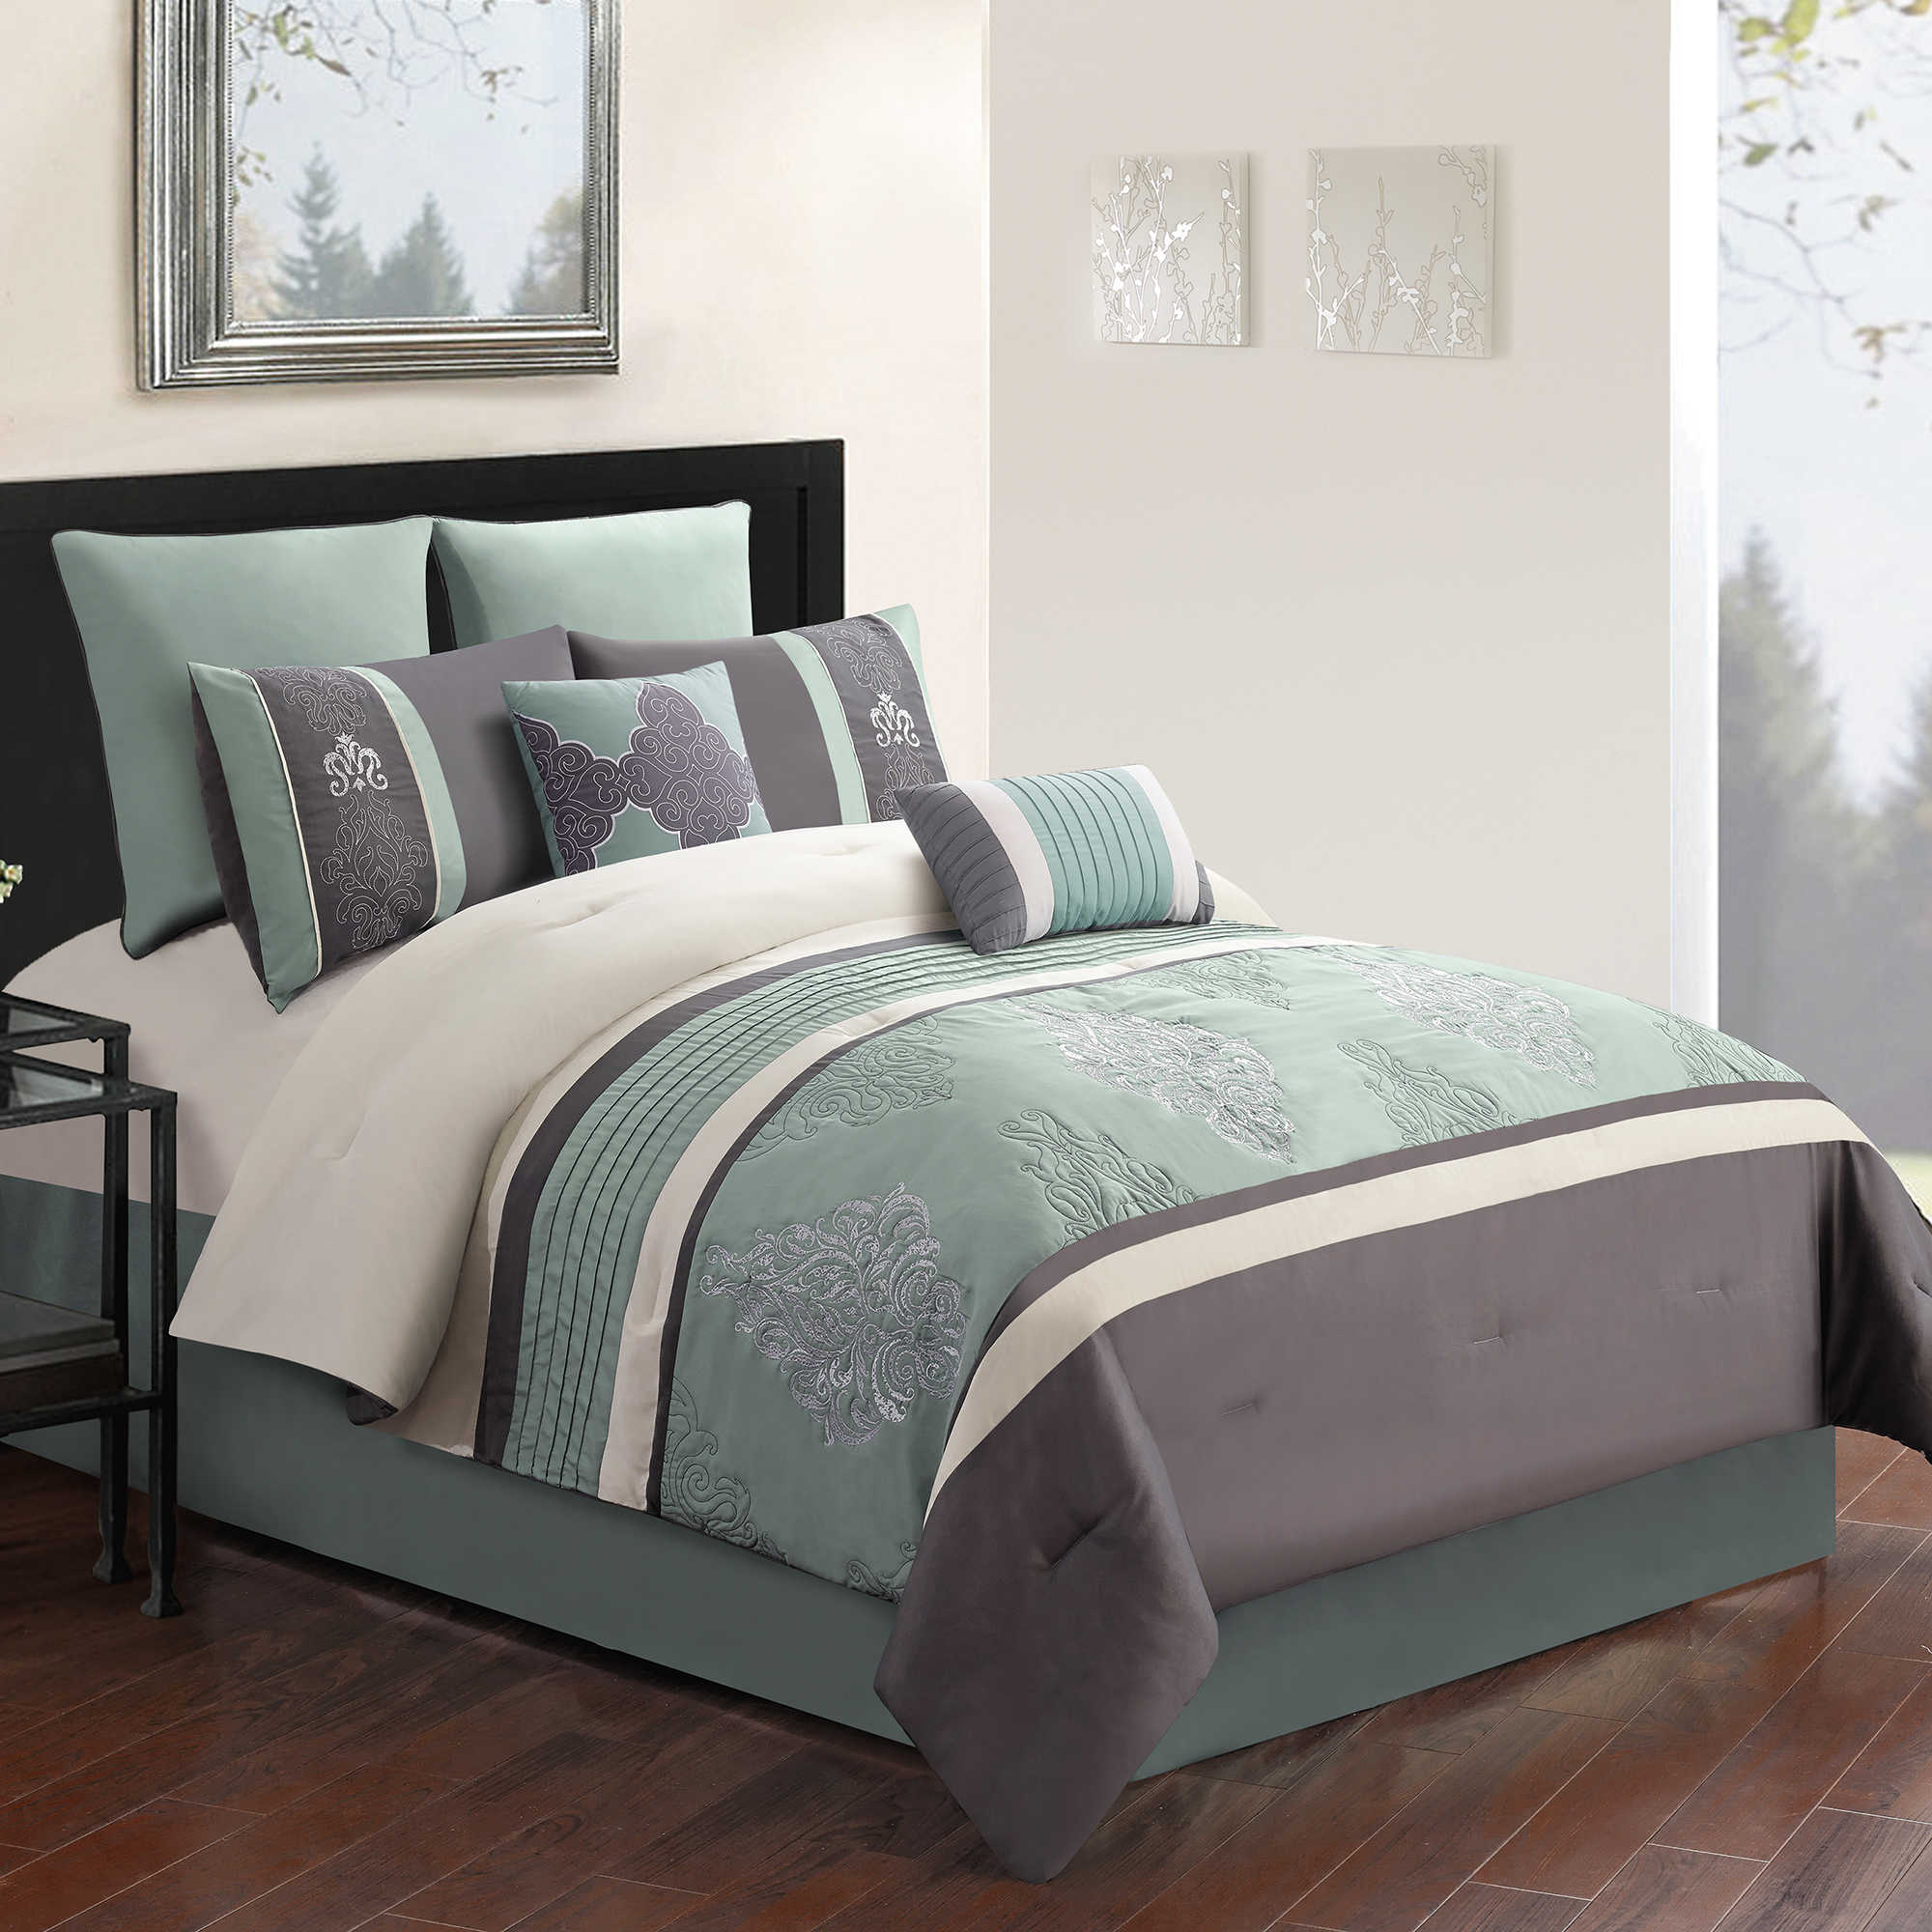 Bedroom sears comforter sets for stylish and cozy bedroom - Bed bath and beyond bedroom furniture ...